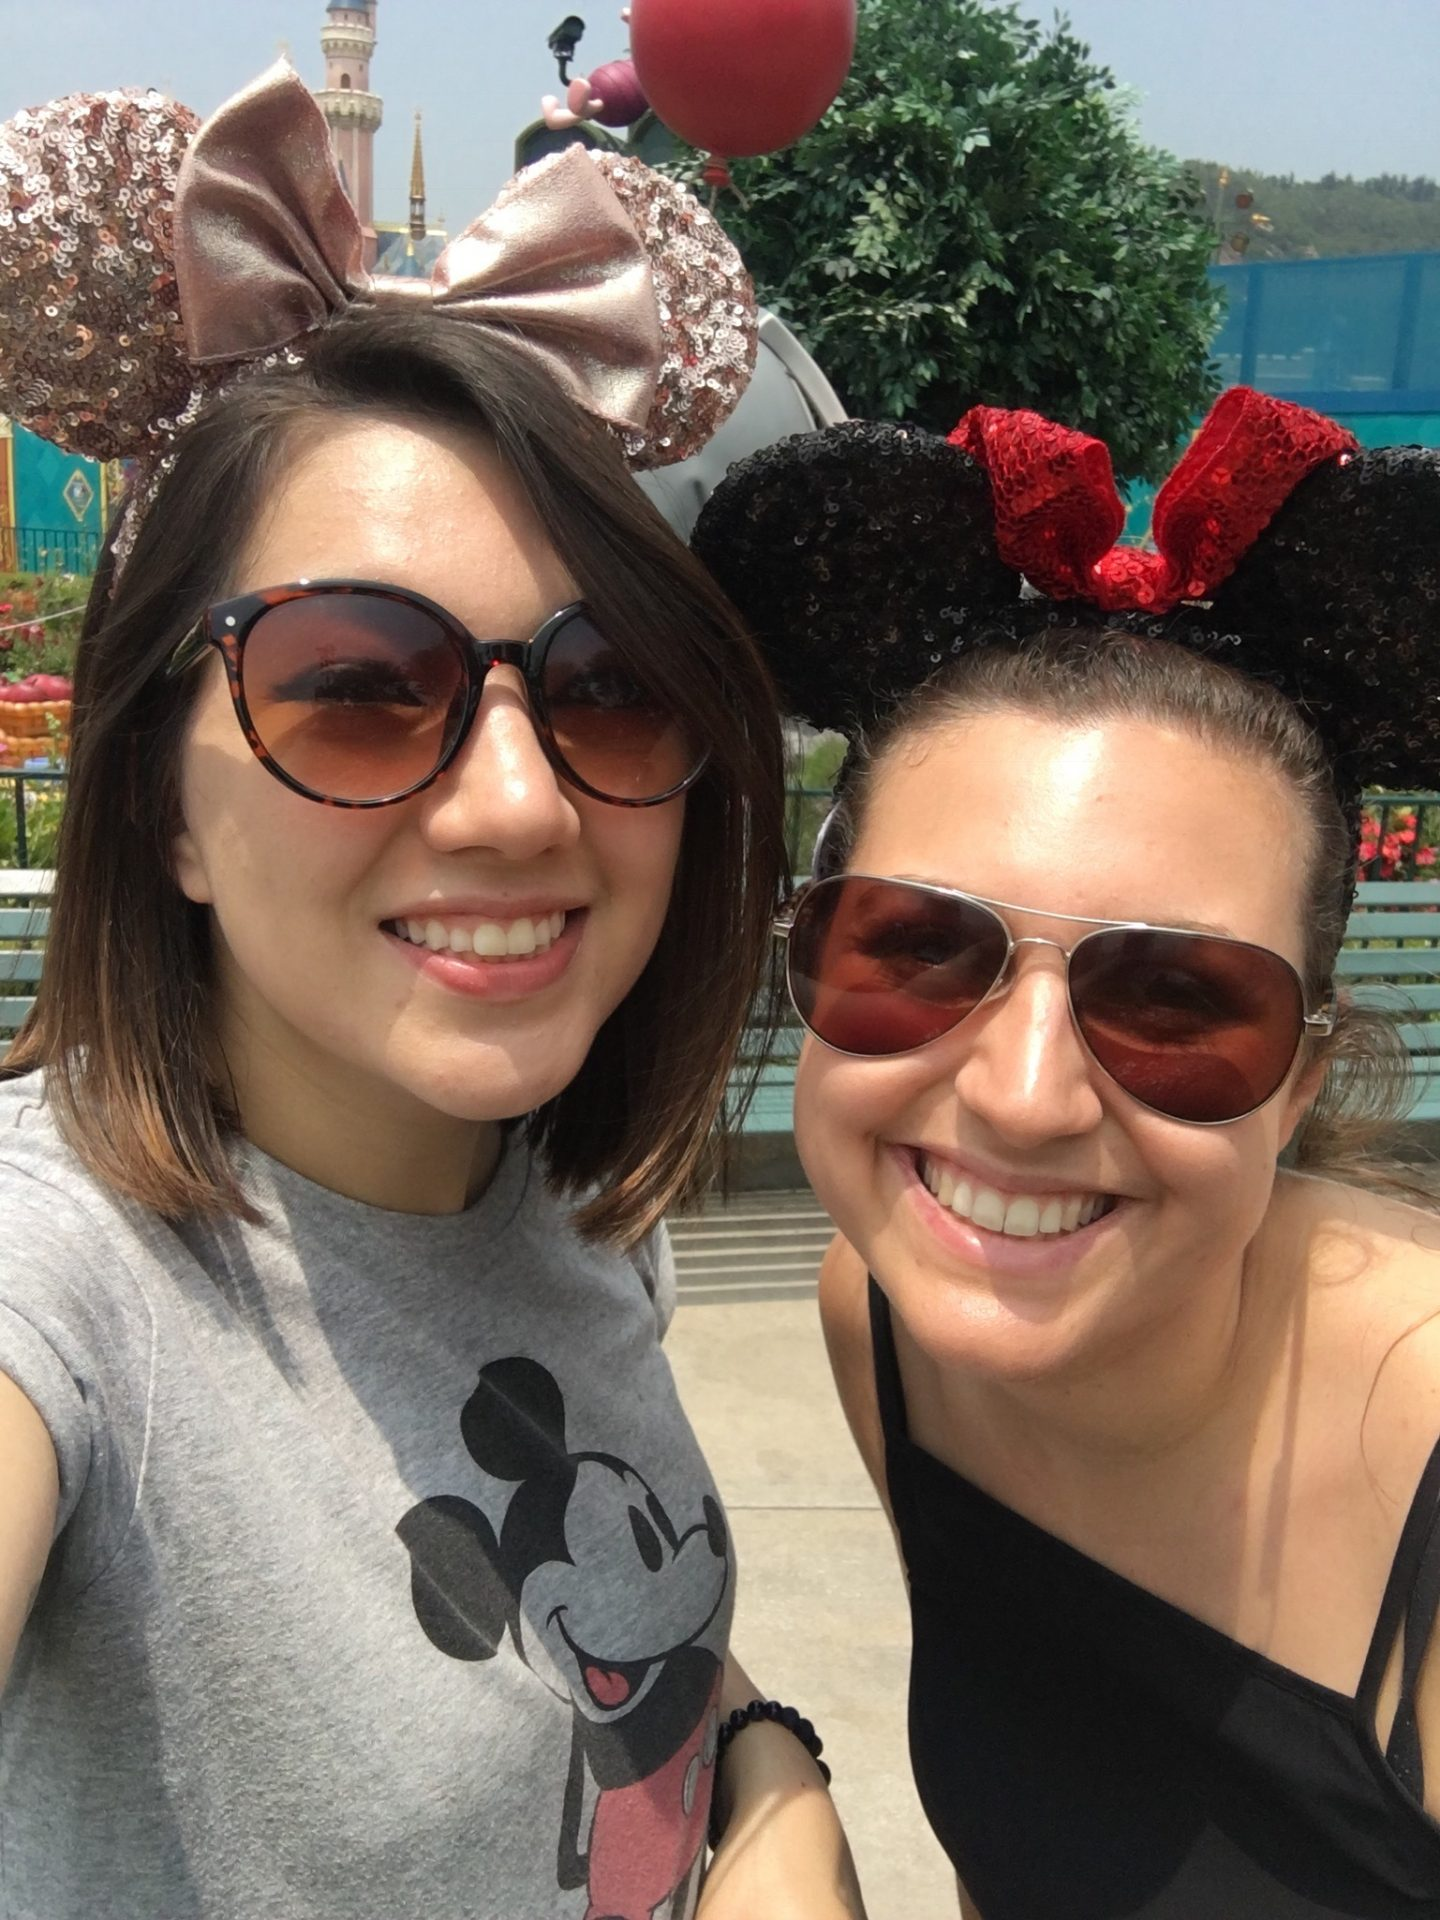 Two girls at Disneyland in Hong Kong wearing minnie mouse ears and looking directly at the camera